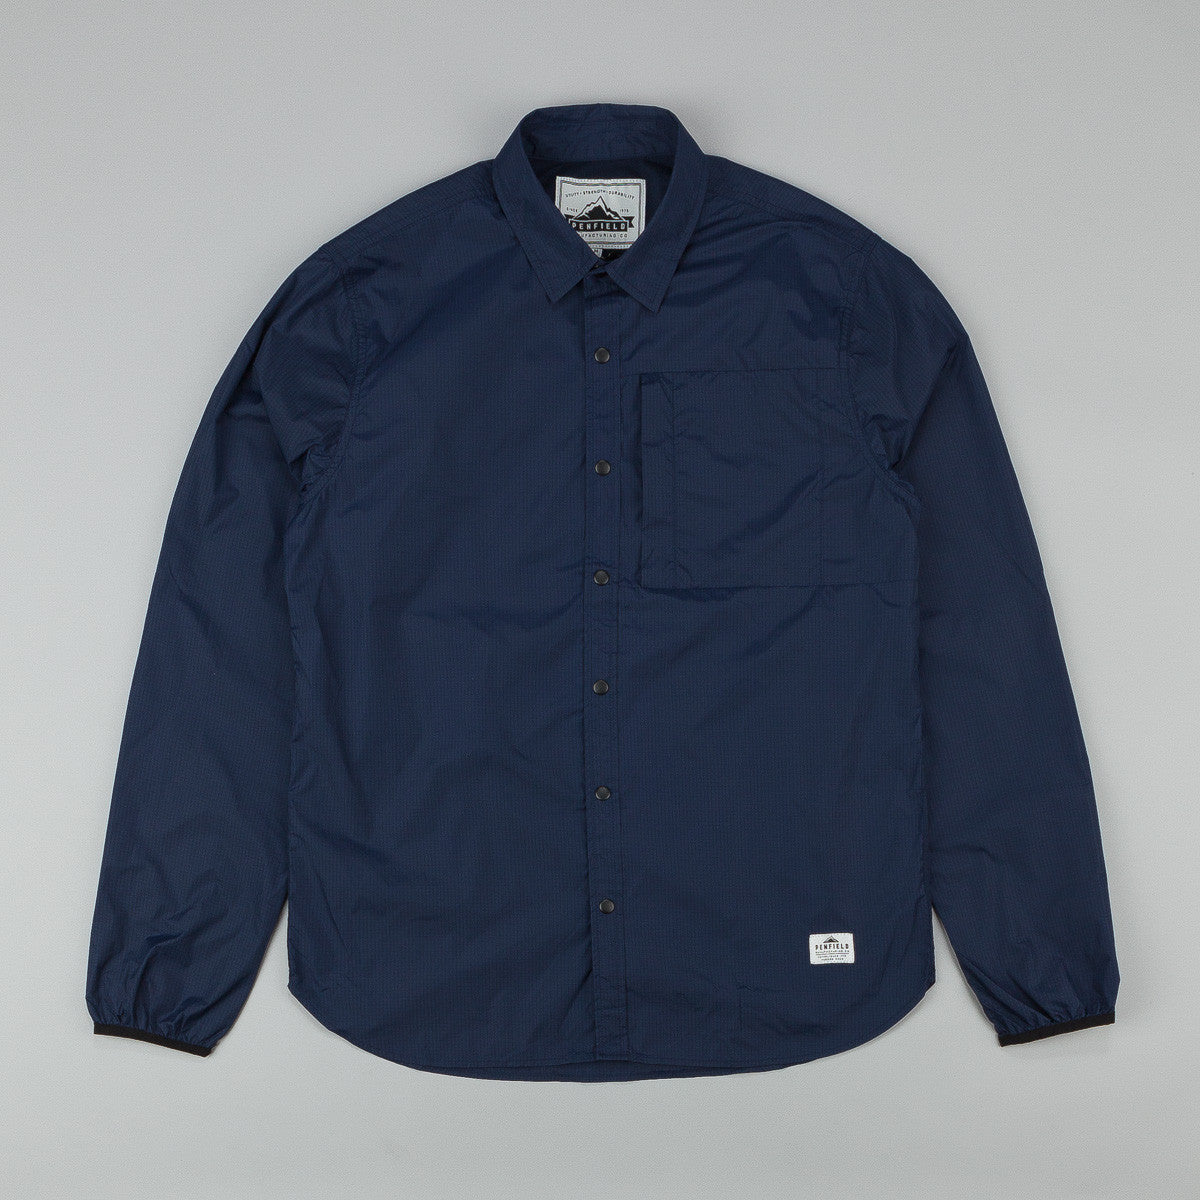 Penfield Underfield Ripstop Nylon Packable Shirt